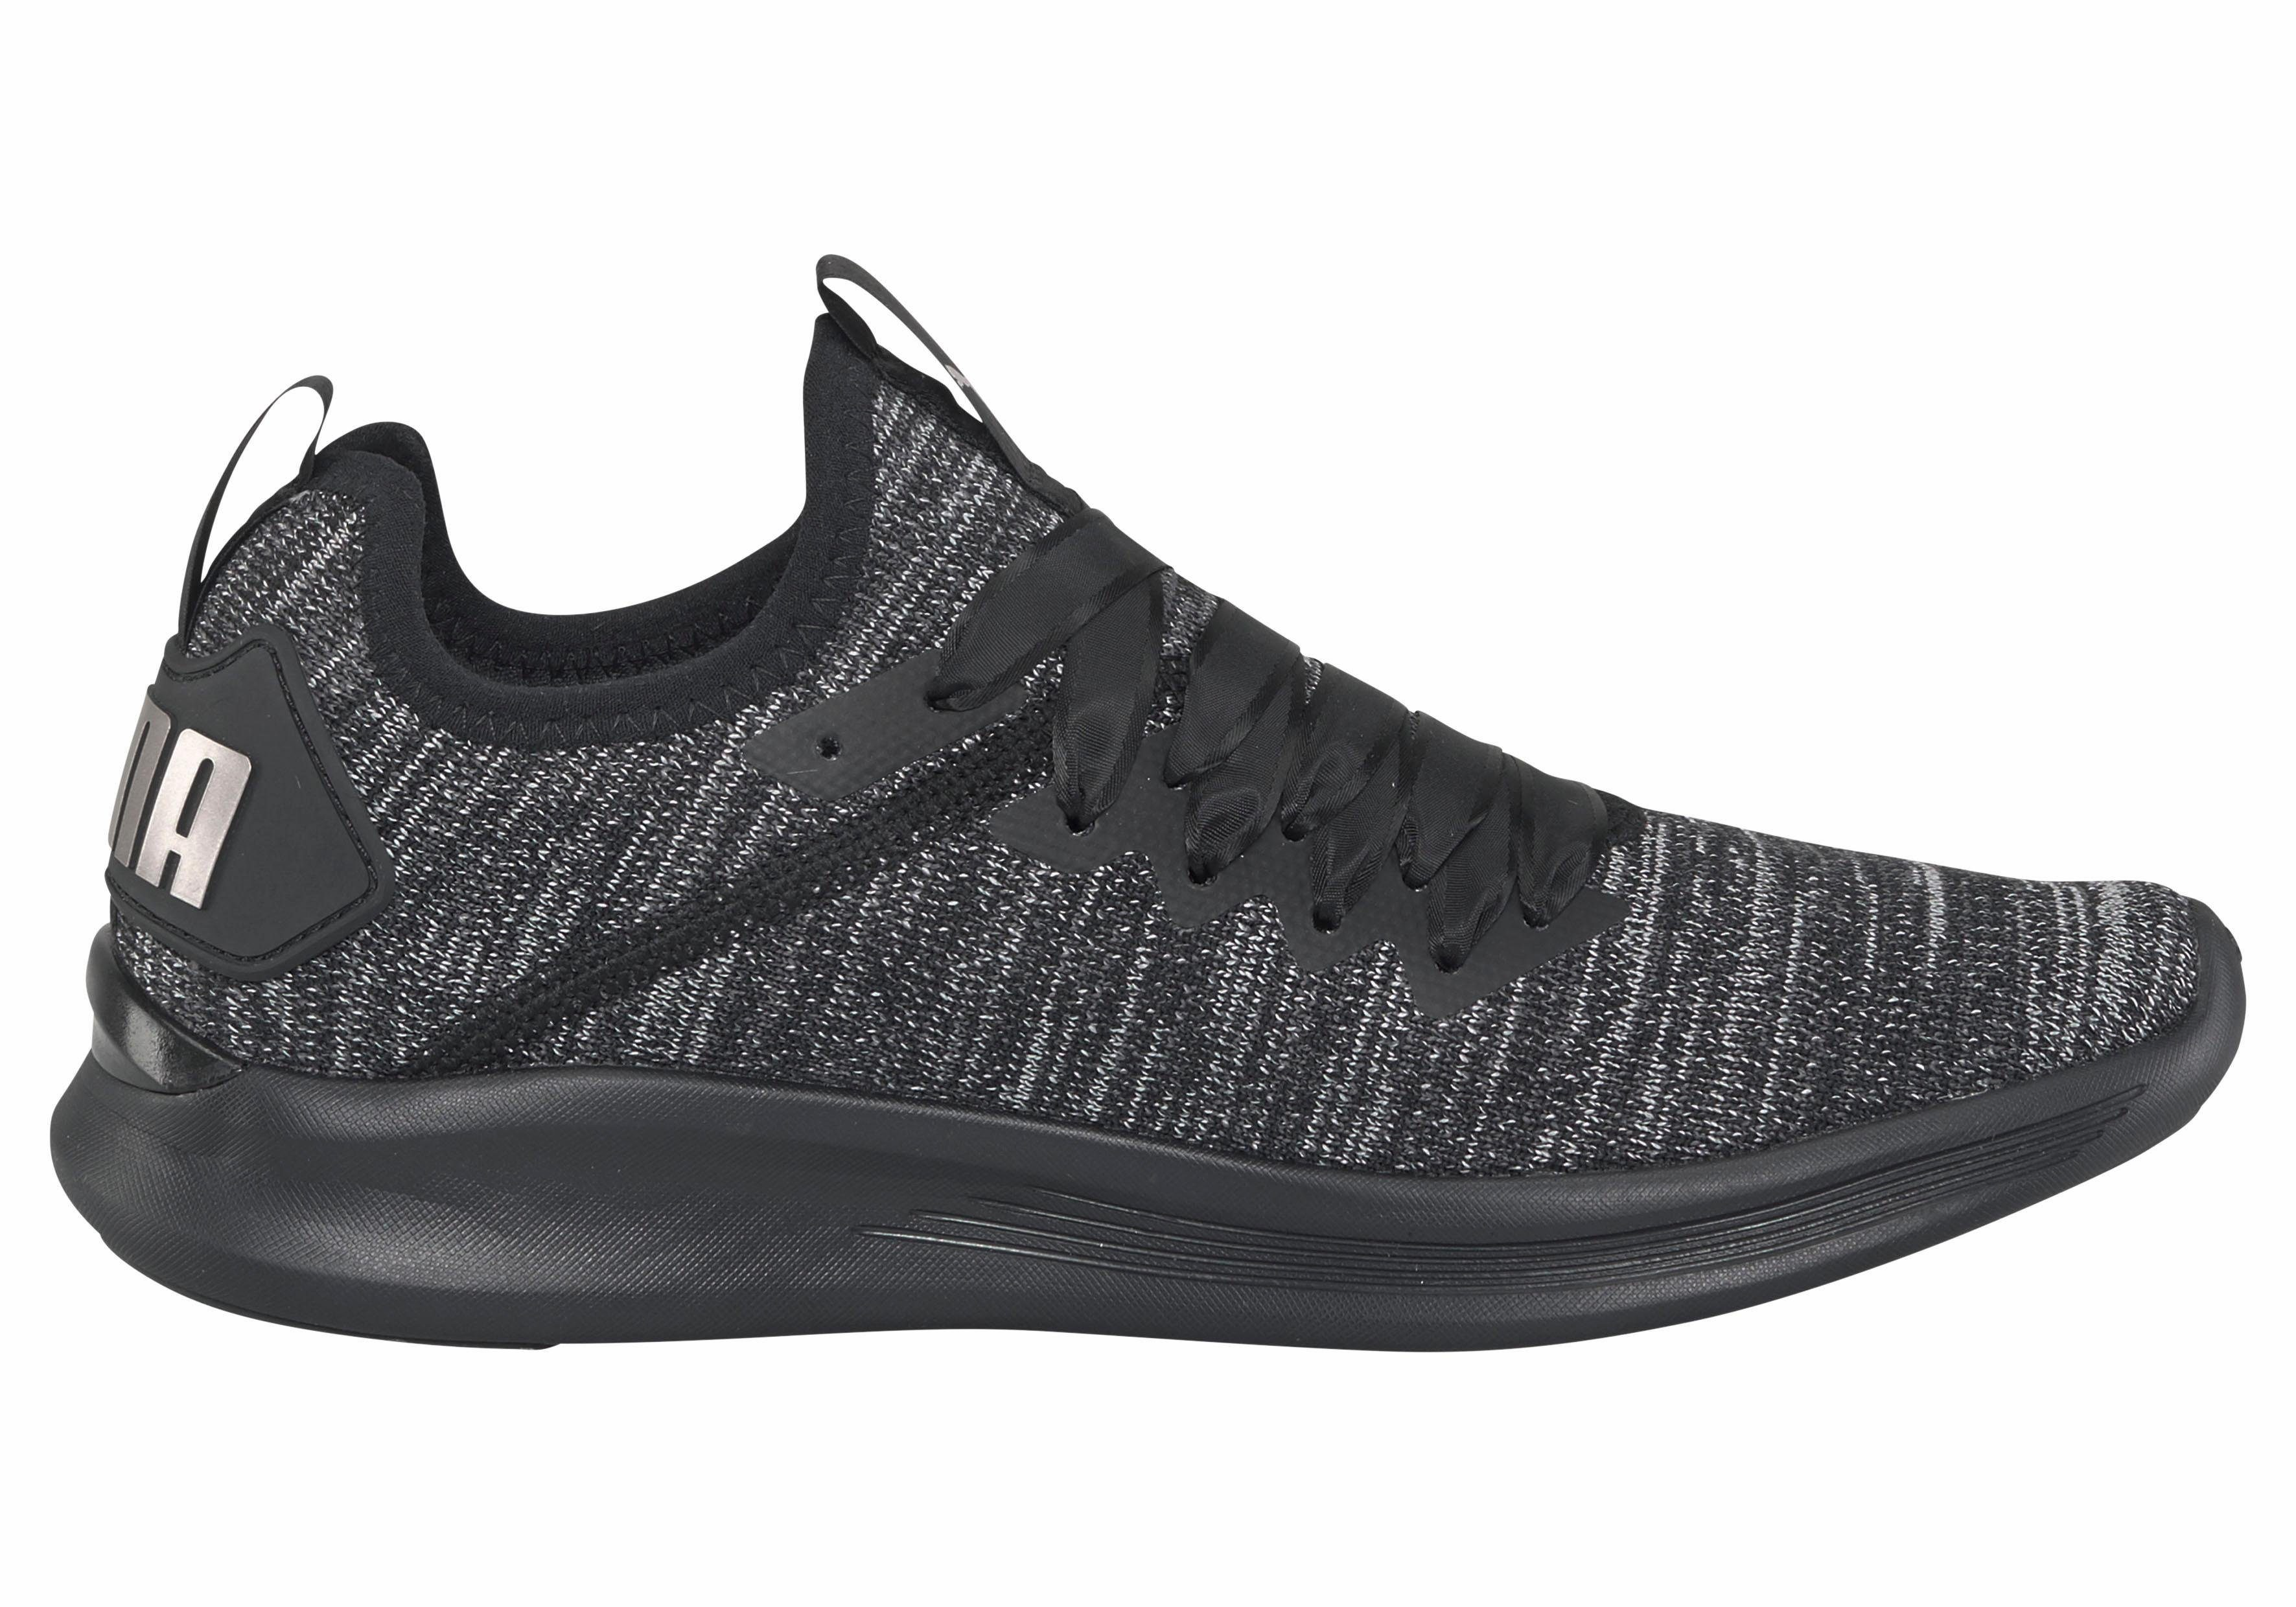 Fitness-schoenen Ignite Flash Evoknit Pumas 5W6TjW